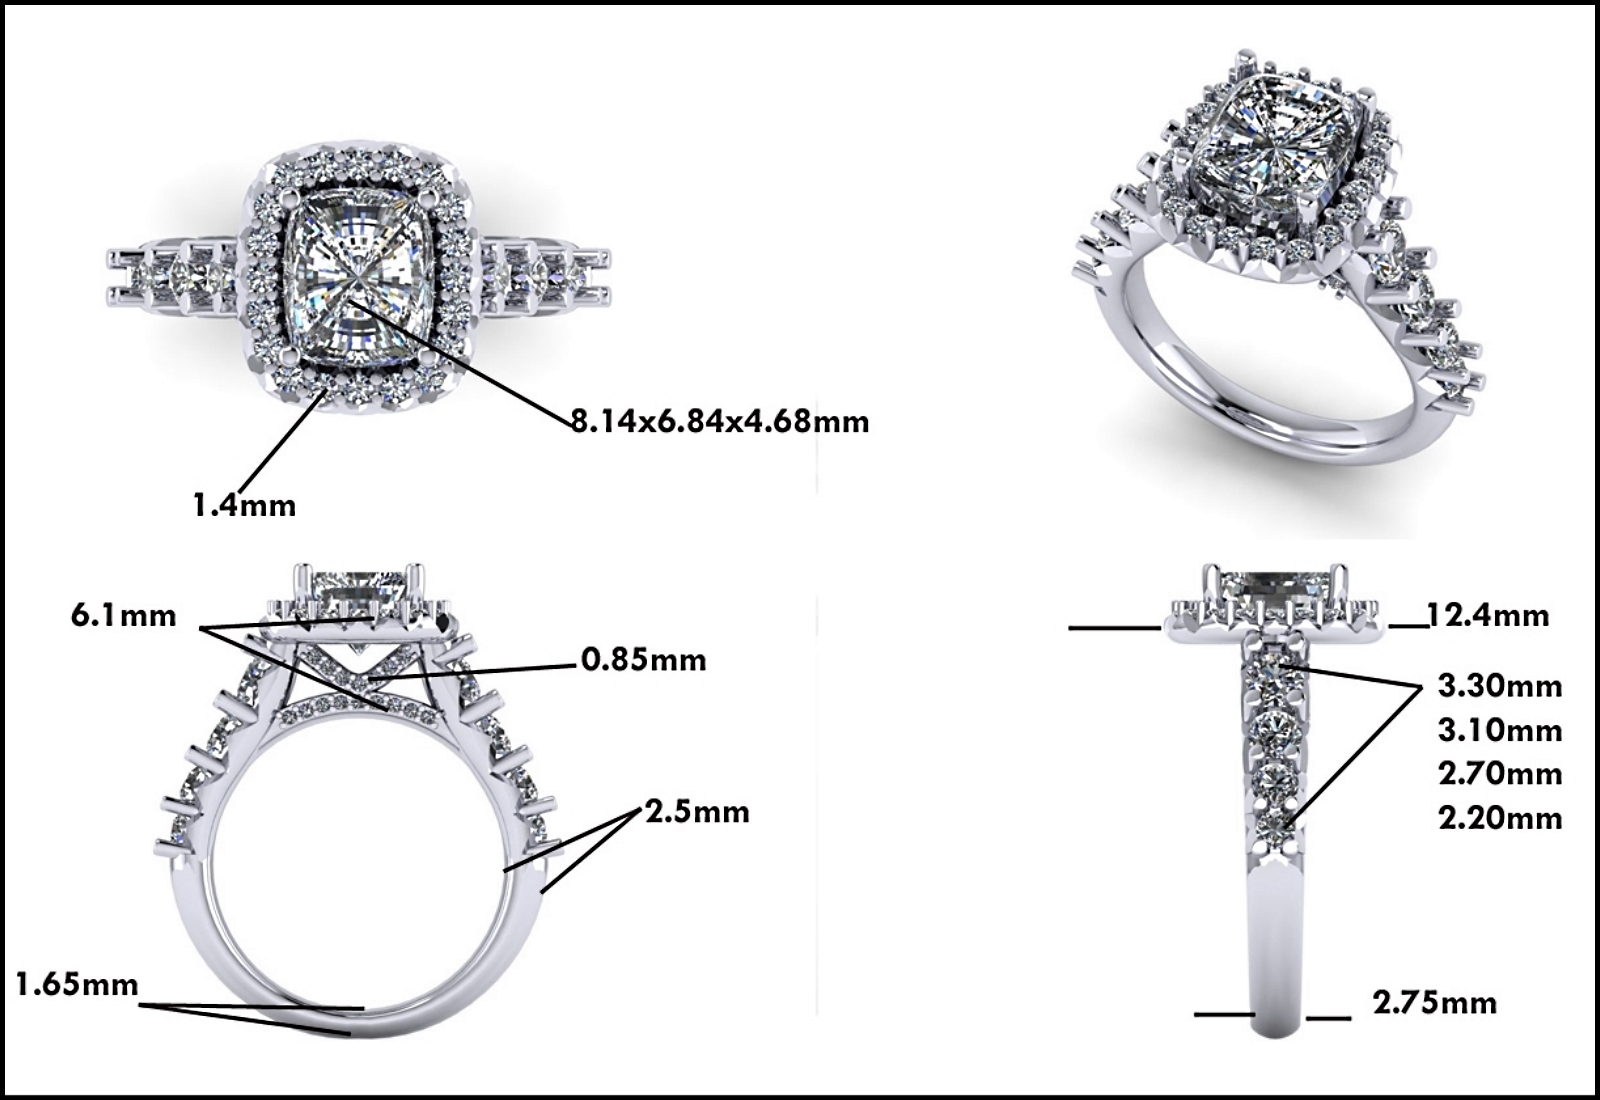 Custom Jewelry Design - Mitchum Jewelers - Image 11